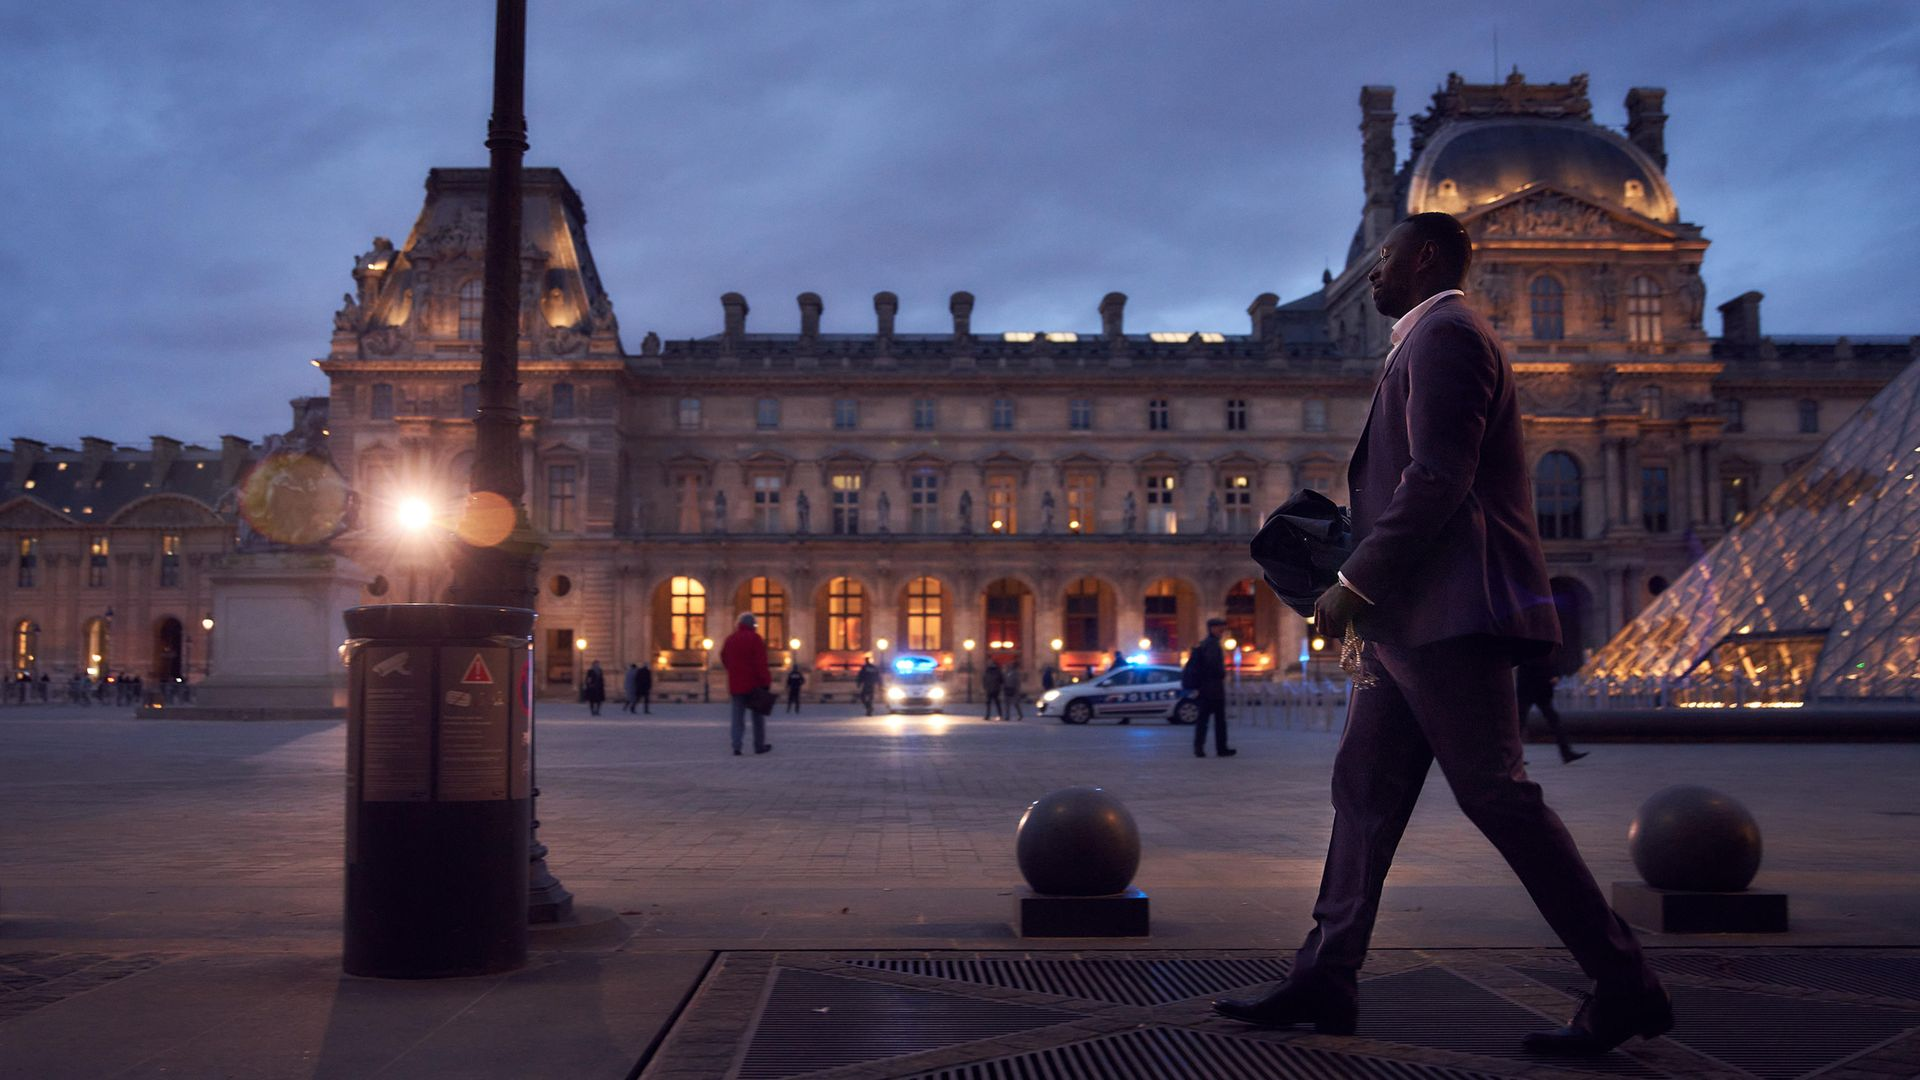 A scene from the Netflix series of Lupin - Credit: Emmanuel Guimier/Netflix